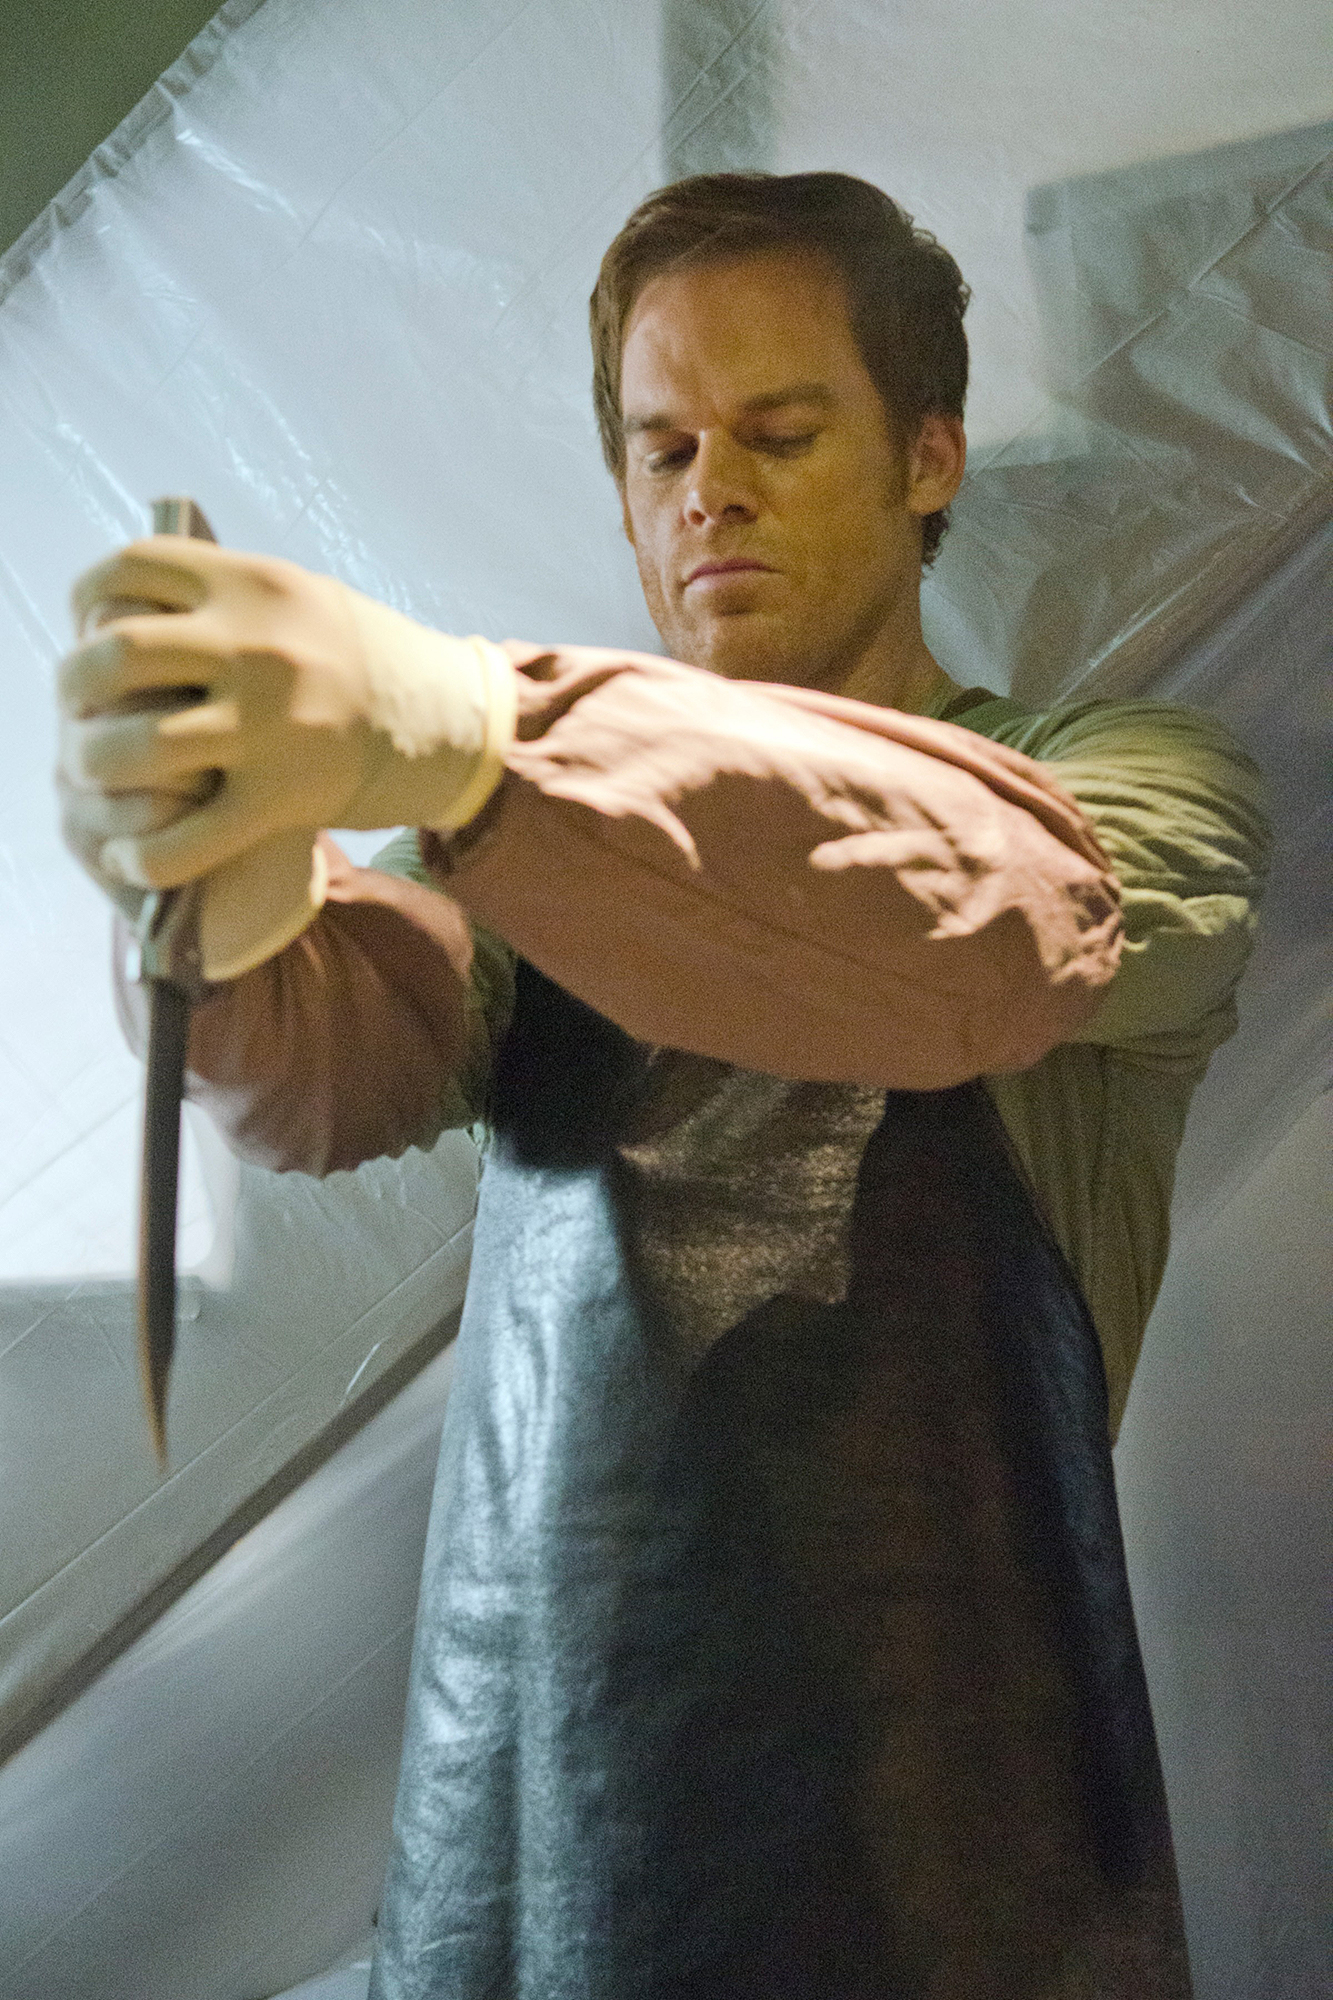 DEXTER, Michael C. Hall in 'The Dark...Whatever' (Season 7, Episode 10, aired December 2, 2012), 200